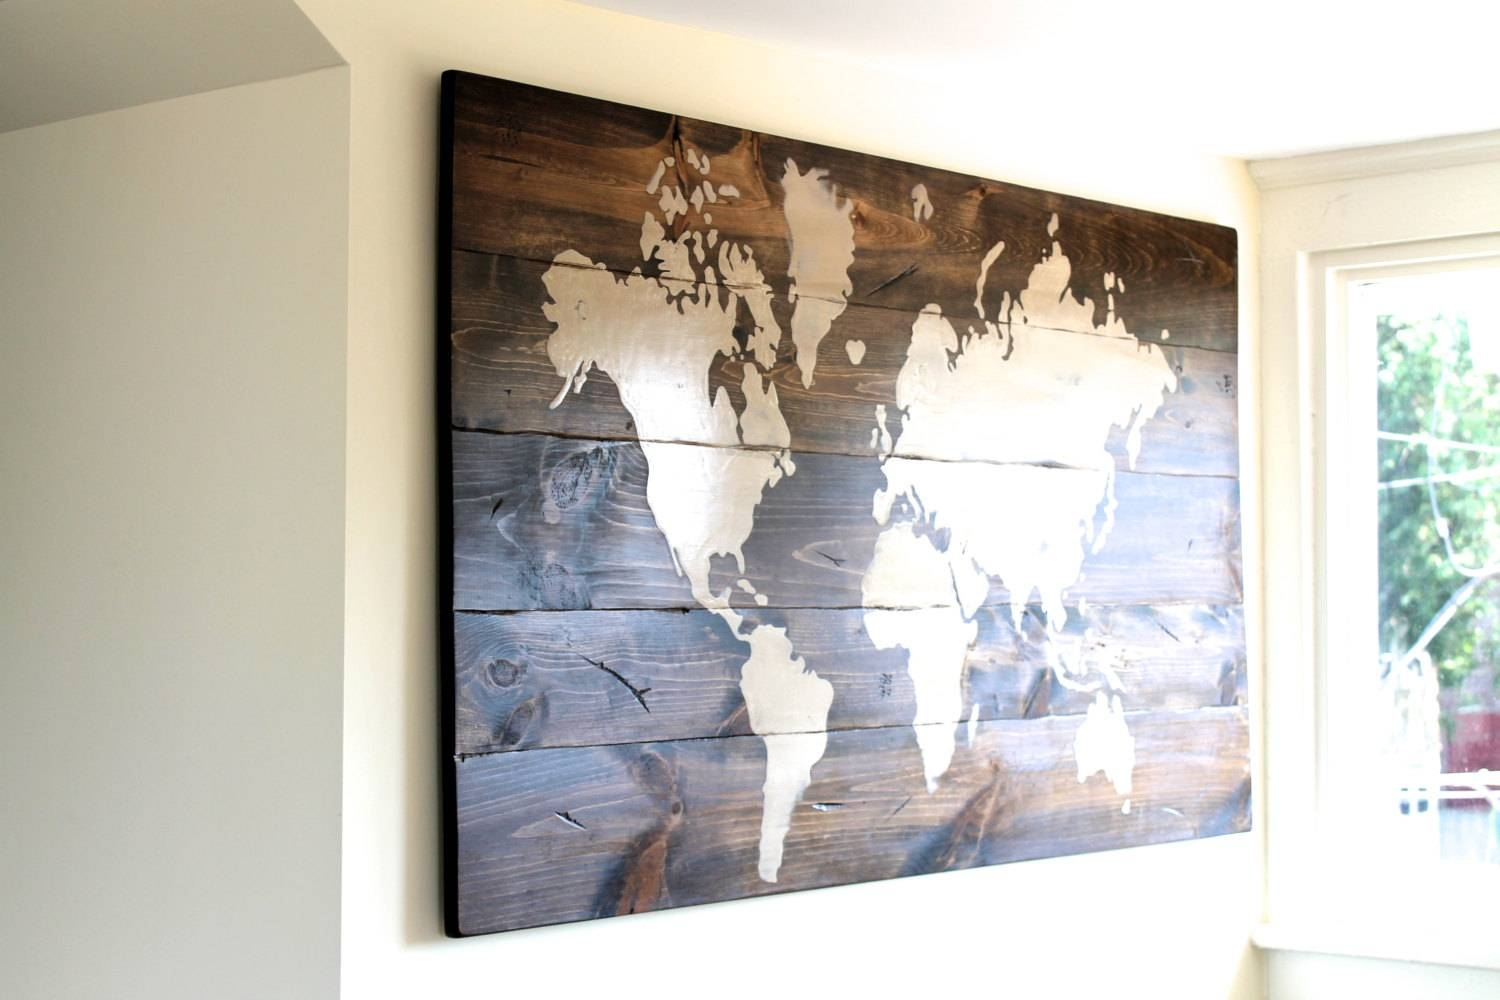 Wall Art Design: Map Wall Art World Map Sign Custom Sign Wooden For Best And Newest Map Wall Art Maps (View 2 of 20)